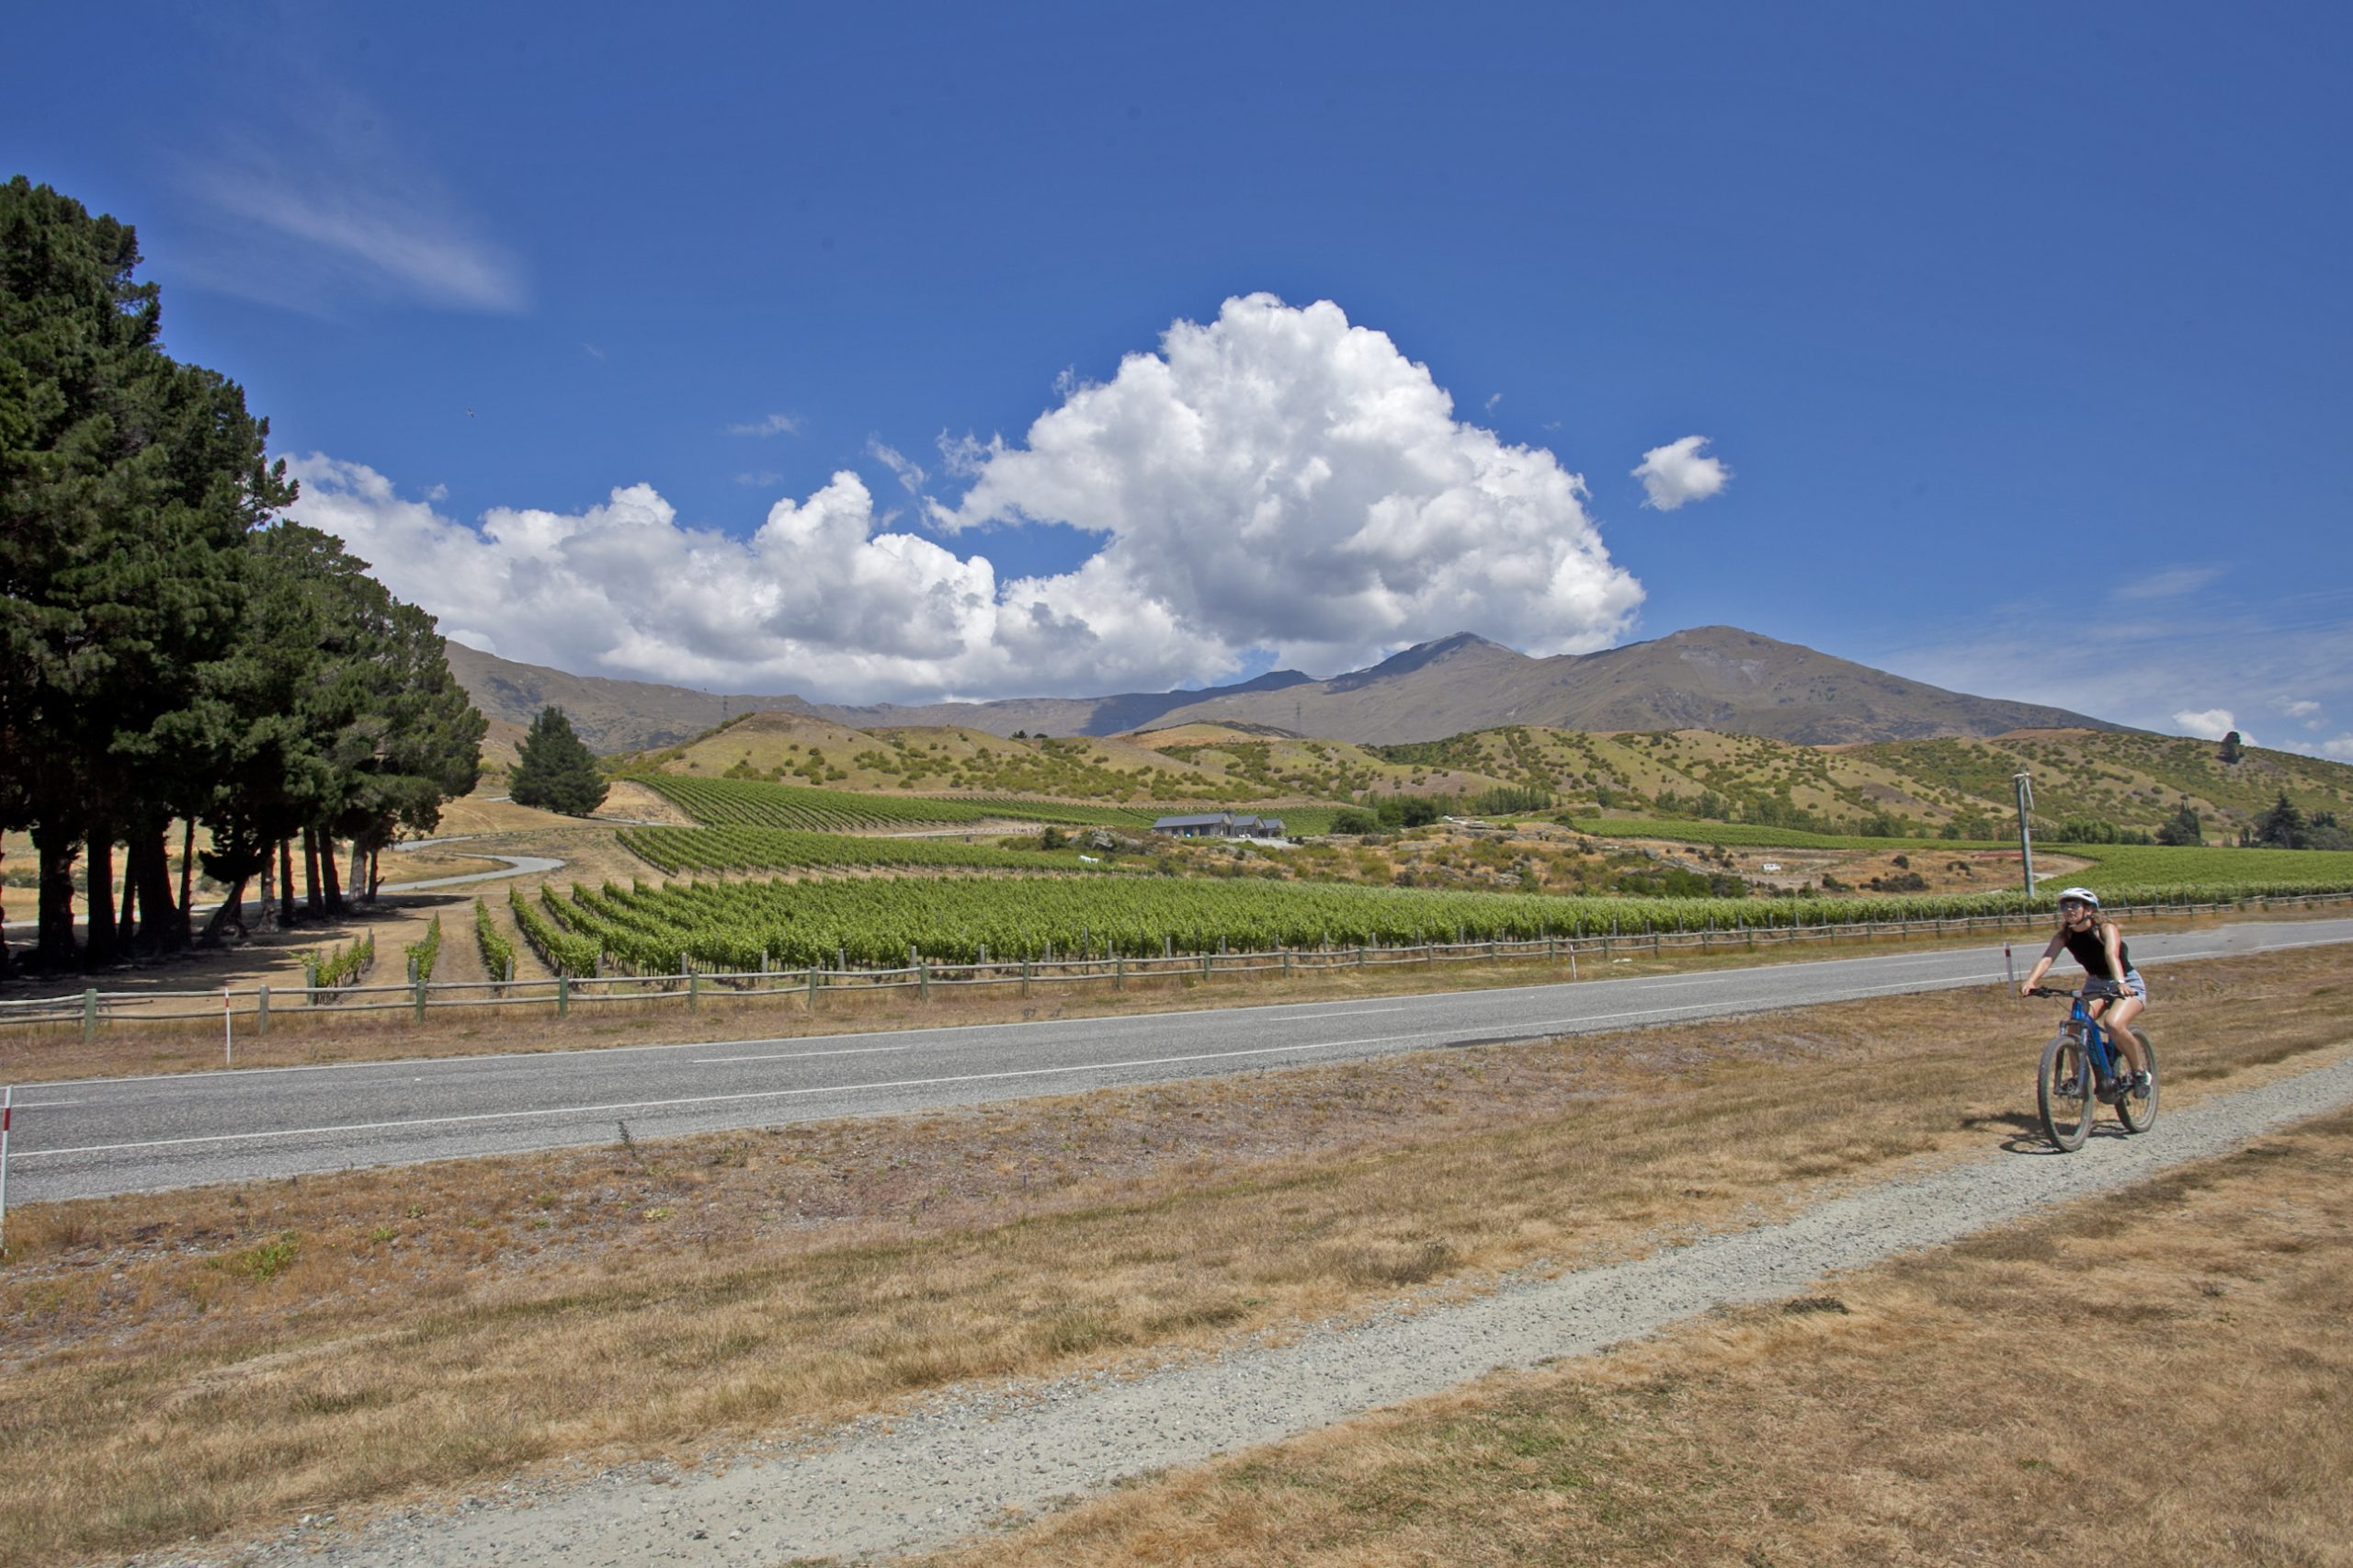 Blue sky riding a electric bike into the Gibbston Valley winery. A bike trail leads the way on a summers day